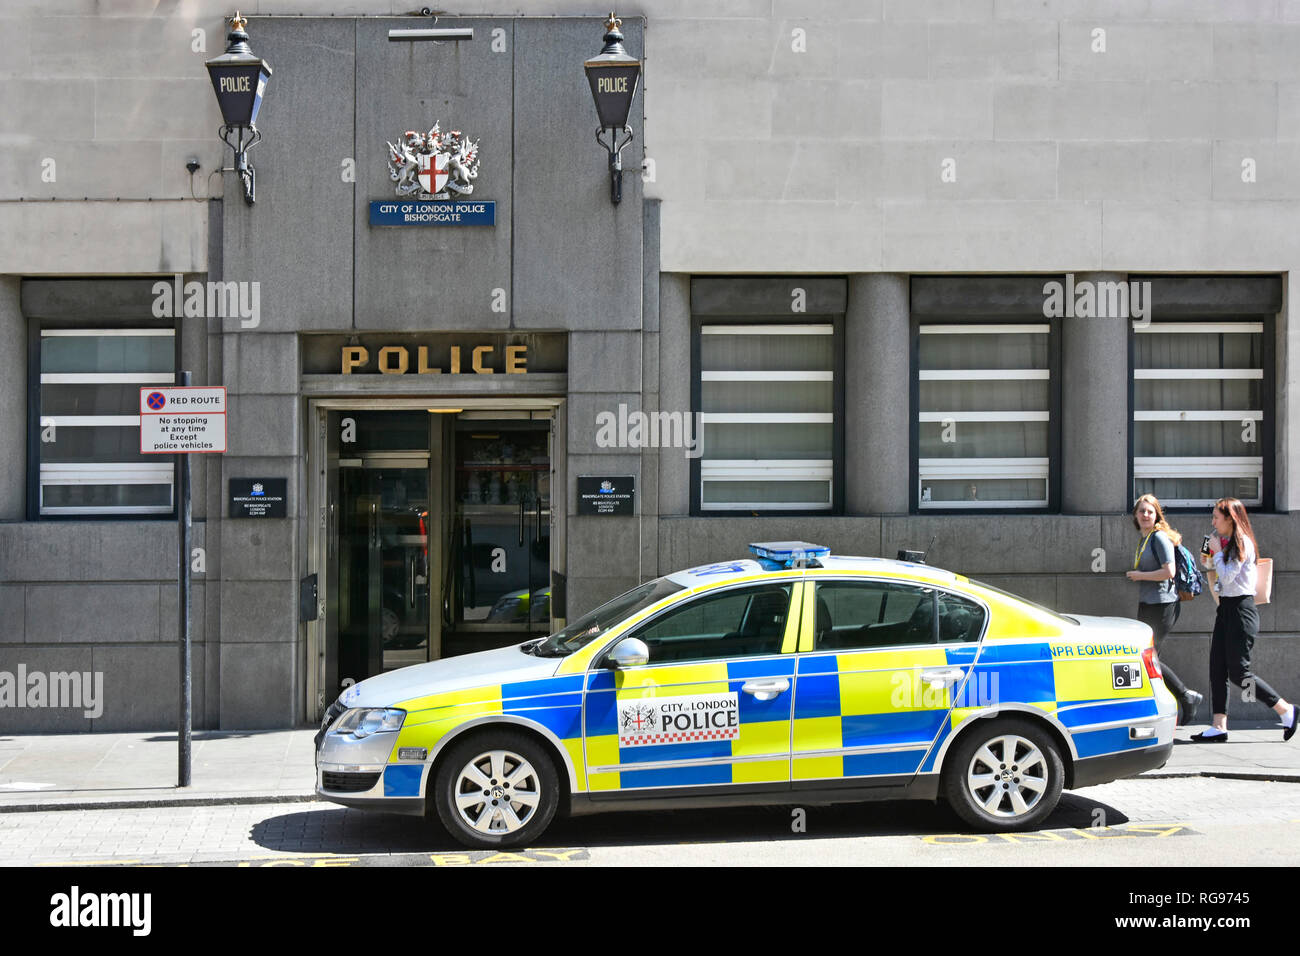 Street scene two blue lights above entrance on exterior of Bishopsgate City of London police station with police patrol car parked outside England UK - Stock Image